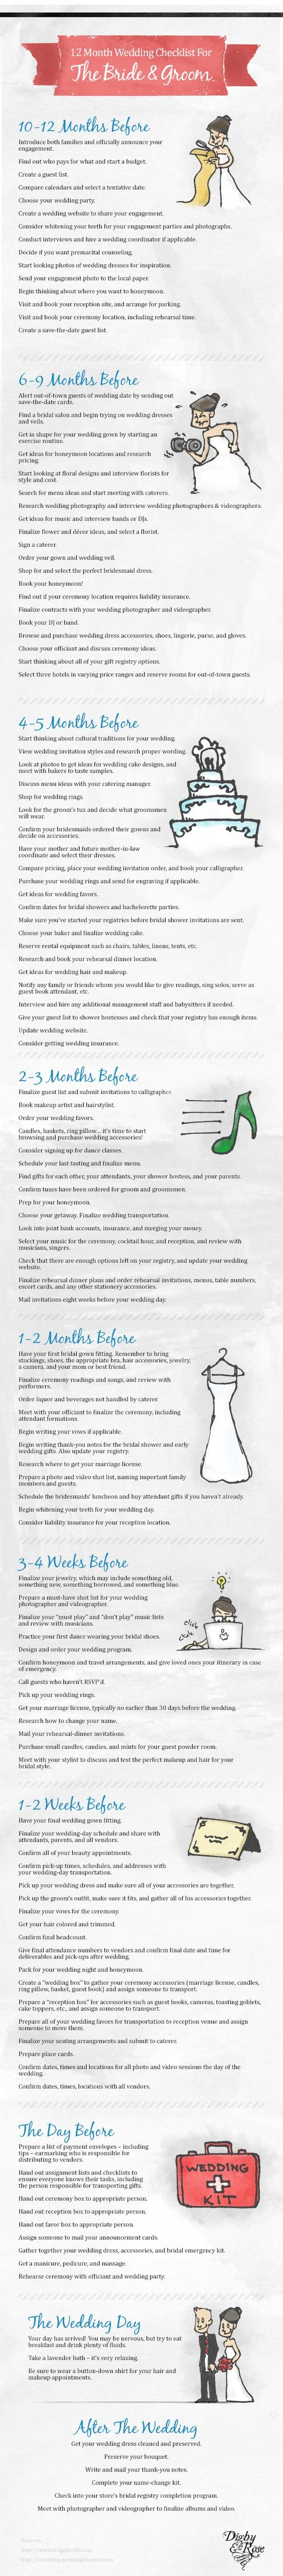 12 month wedding planning checklist. Holy how do women do this?? Sounds like an ordeal!!- someday ill be so glad I have this